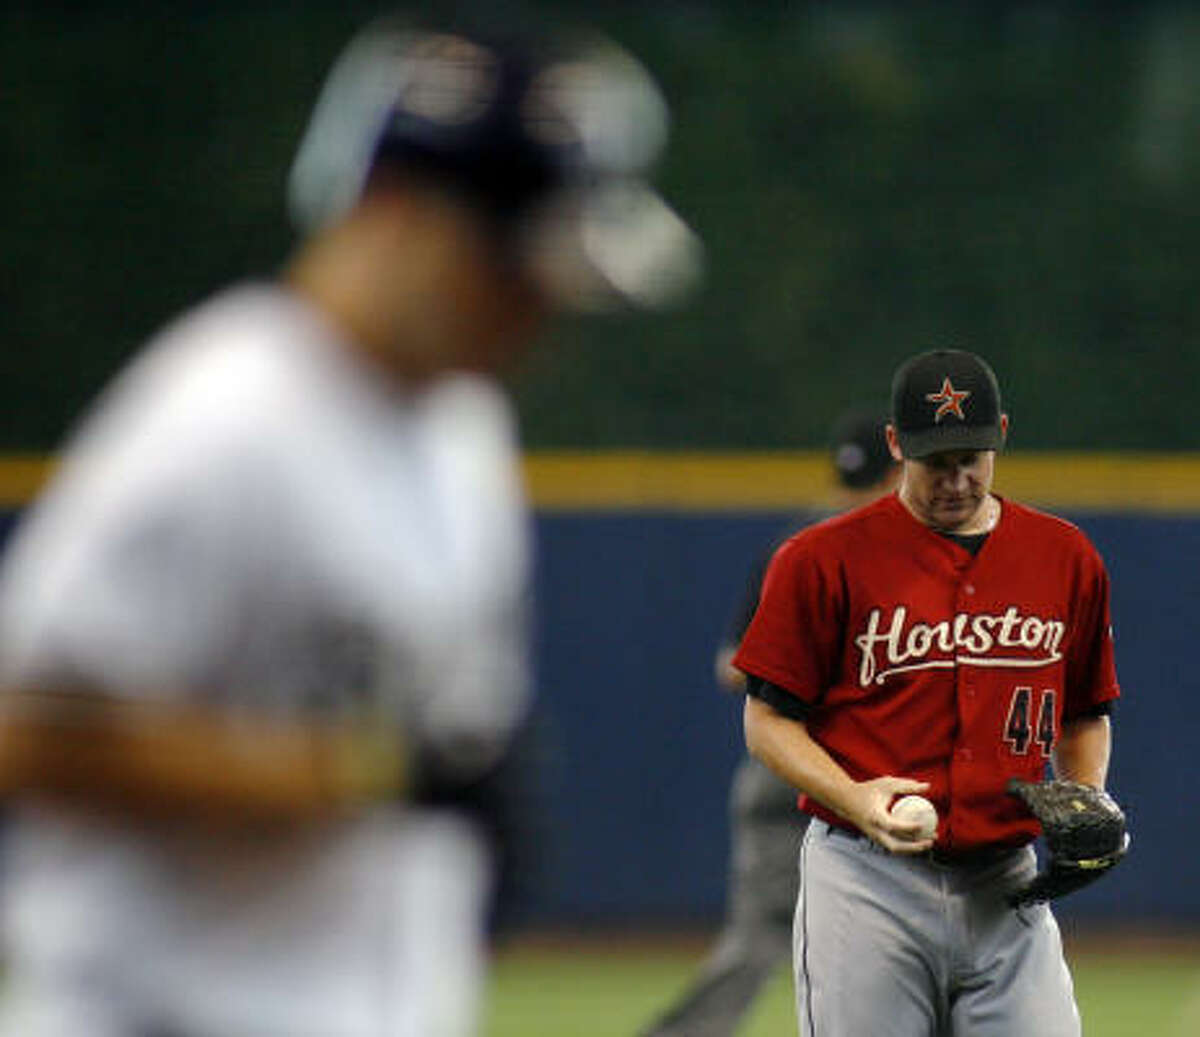 Astros starting pitcher Roy Oswalt, right, looks down at the ball after giving up a two-run home run to Milwaukee Brewers' Ryan Braun, left, in the first inning.